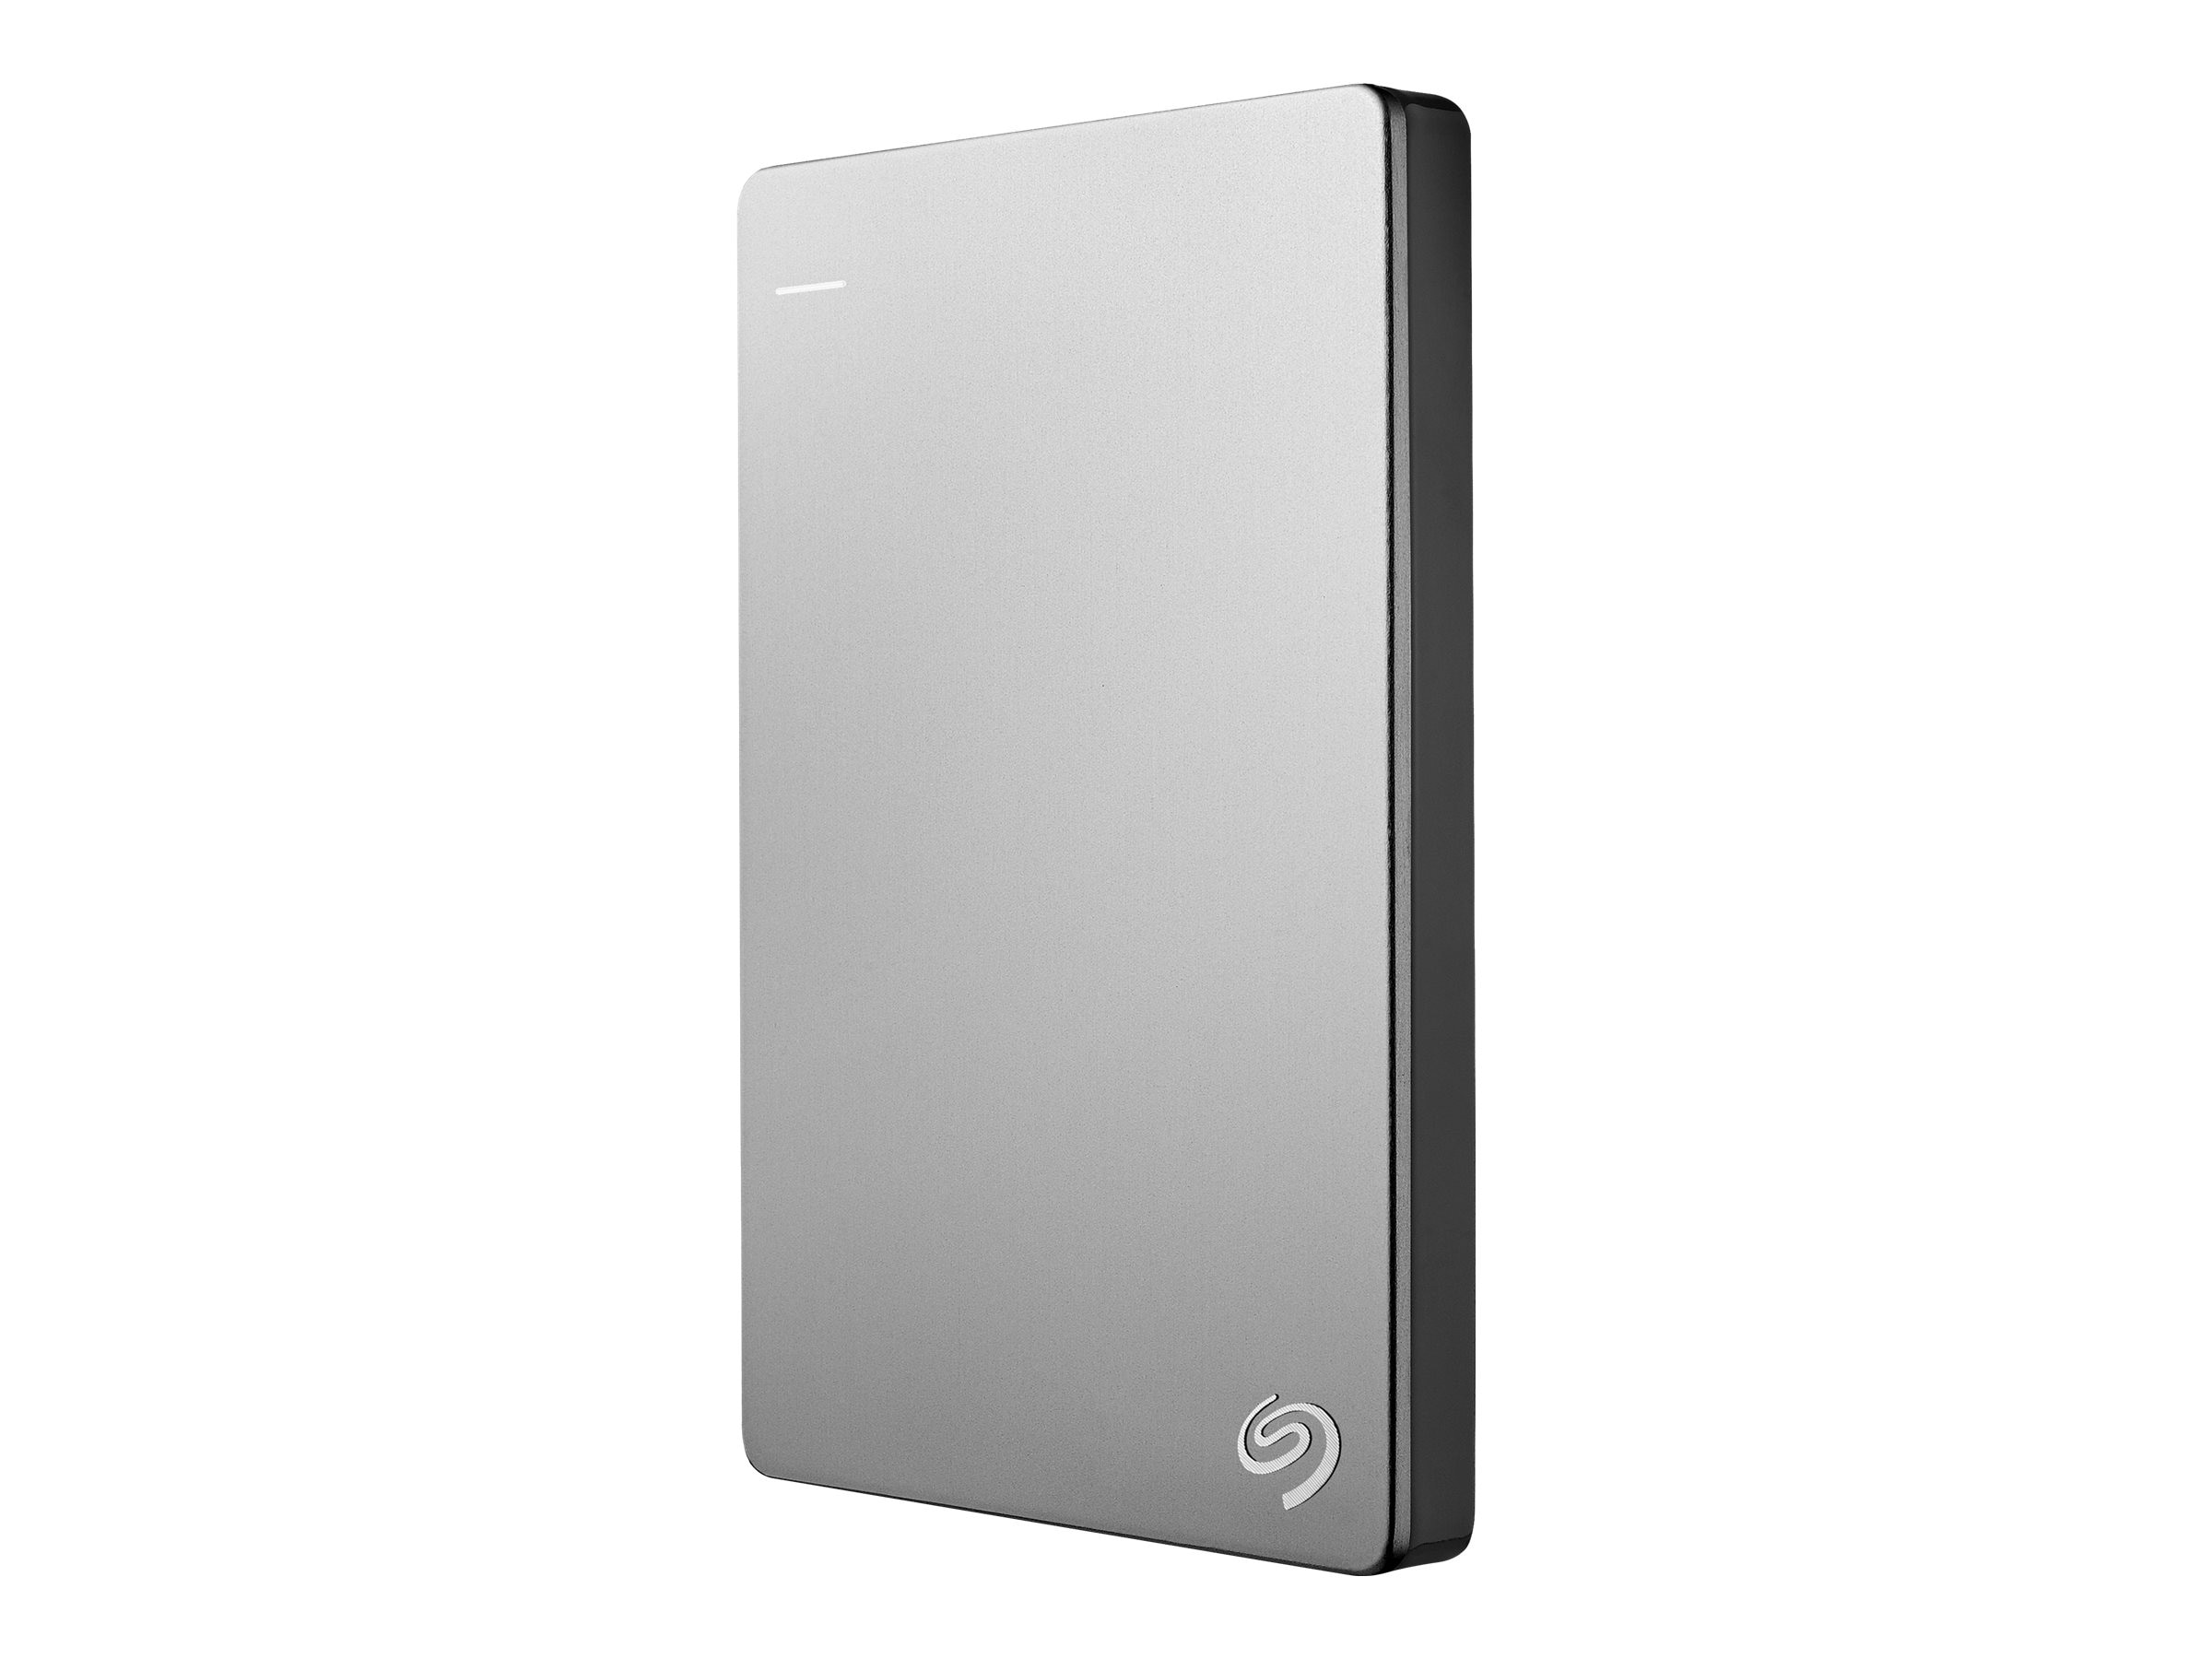 Seagate 2TB Backup Plus for Mac USB 3.0 Portable Hard Drive, STDS2000100, 17547336, Hard Drives - External